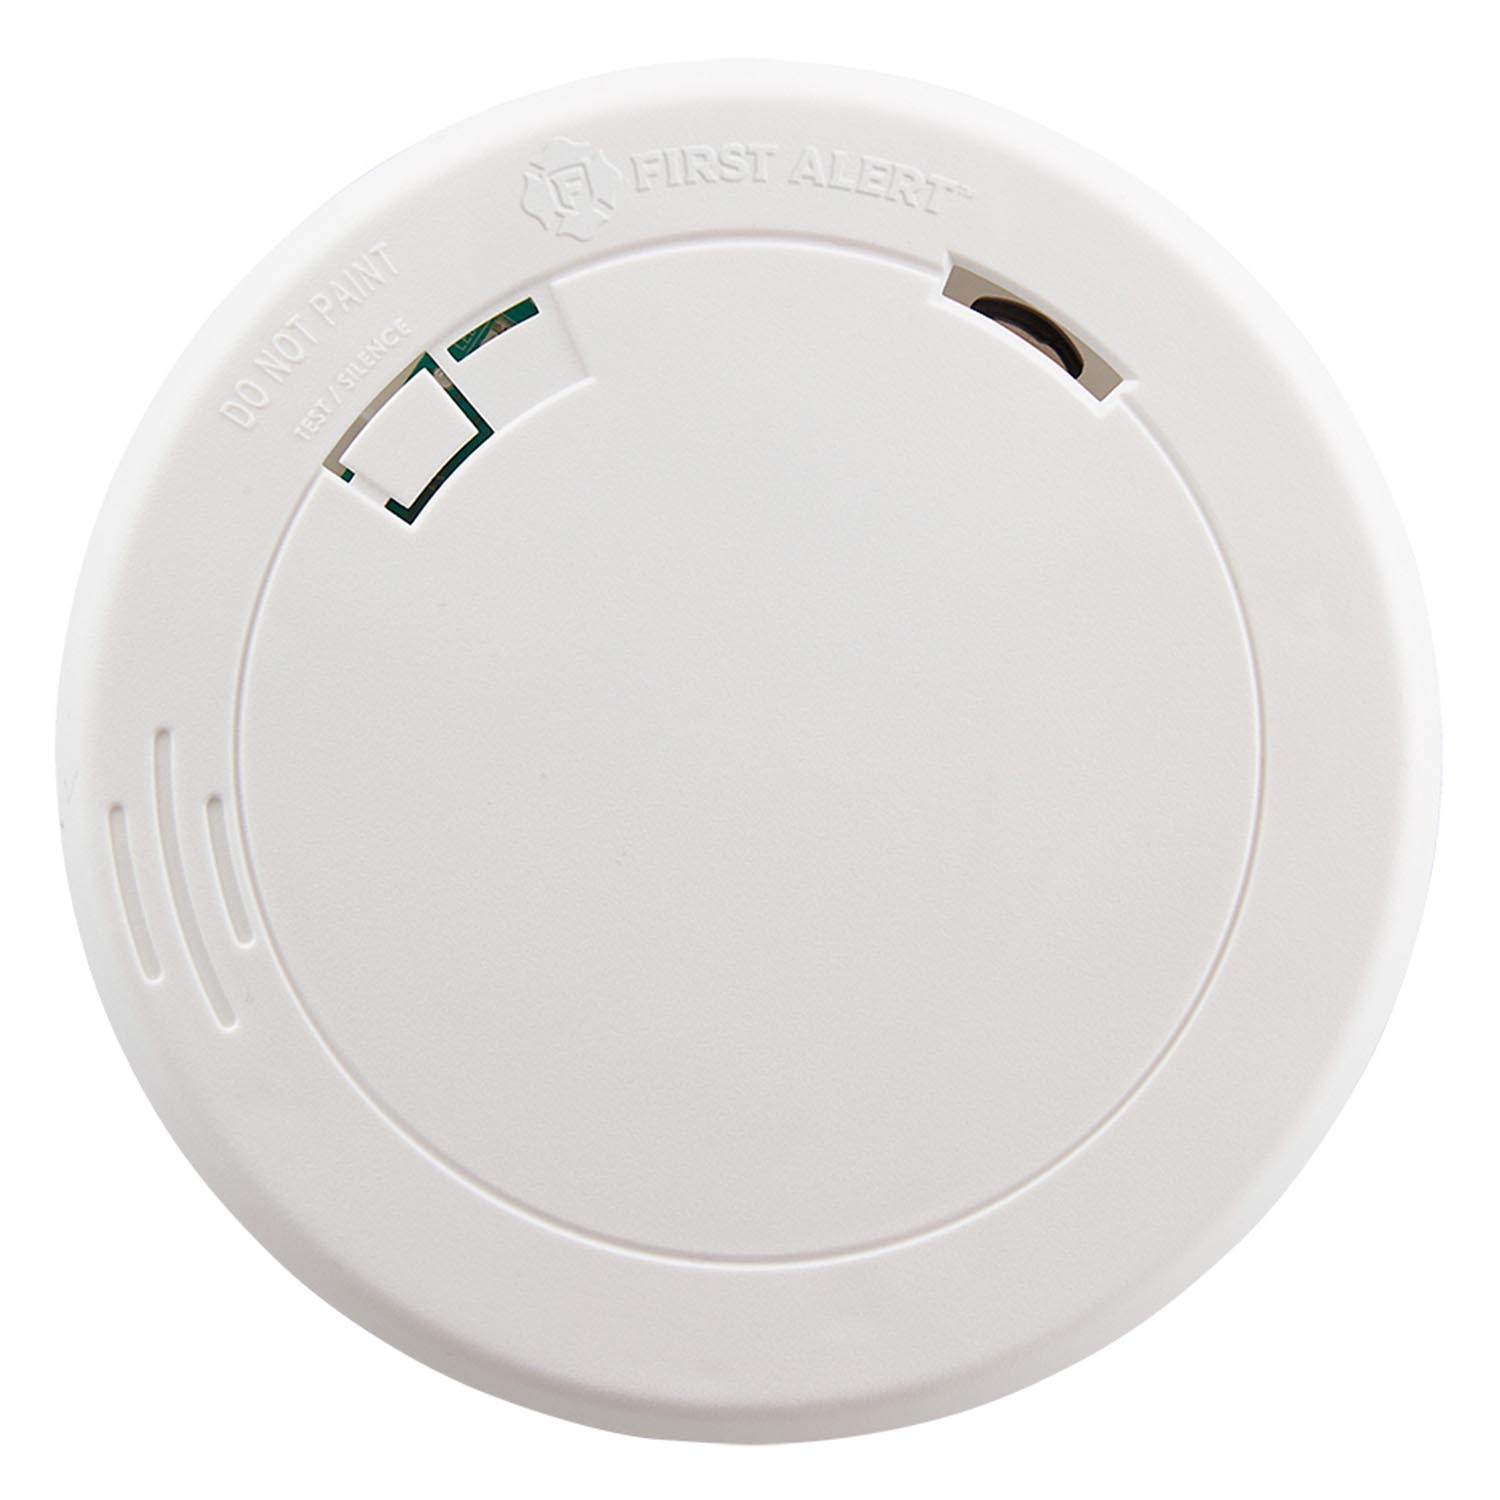 hight resolution of first alert pr700 slim design battery operated photoelectric smoke fire alarm first alert store